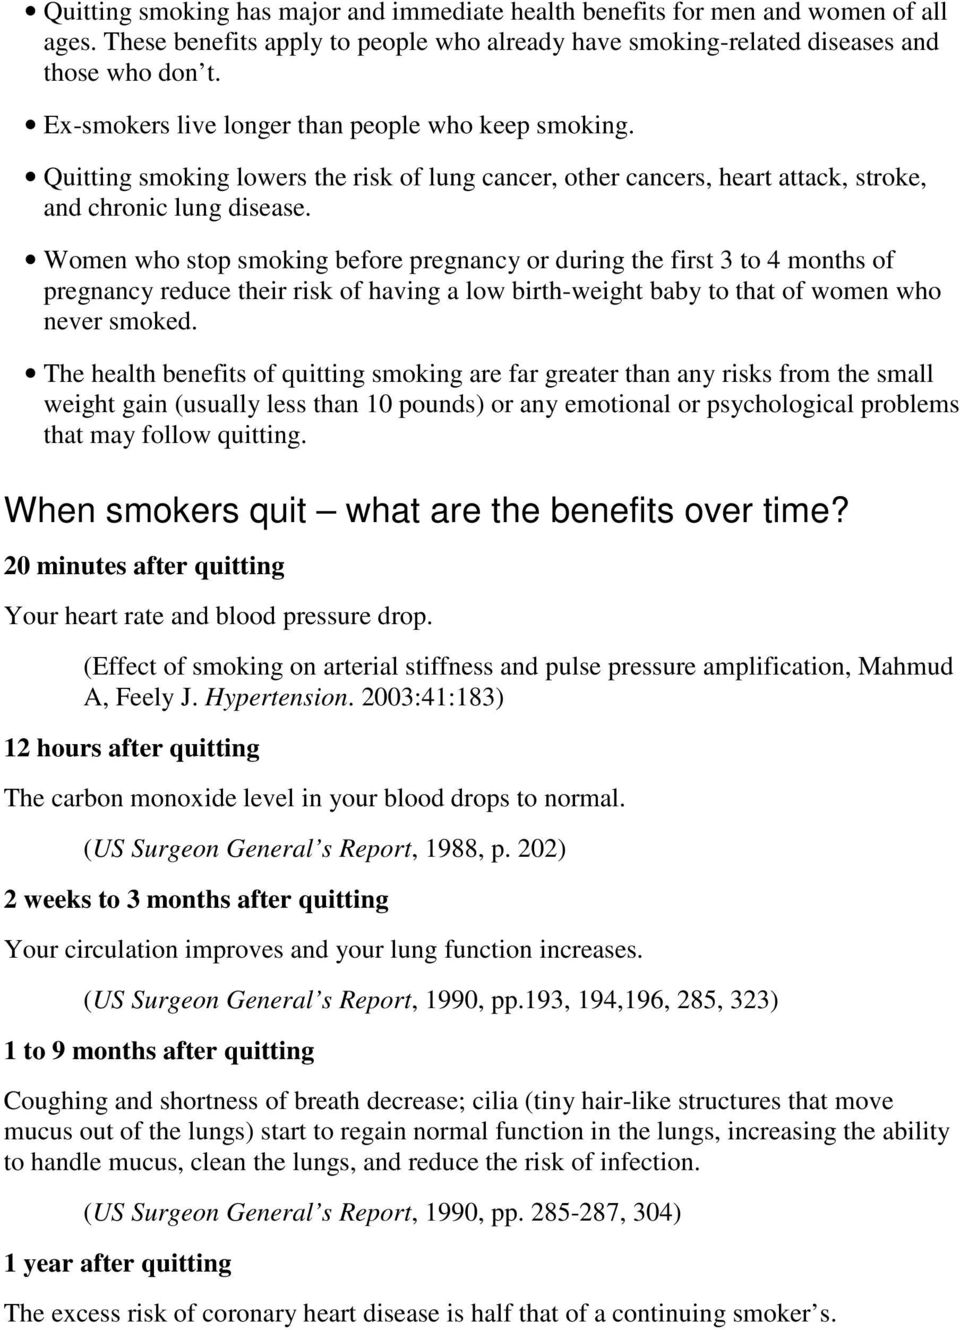 Women who stop smoking before pregnancy or during the first 3 to 4 months of pregnancy reduce their risk of having a low birth-weight baby to that of women who never smoked.